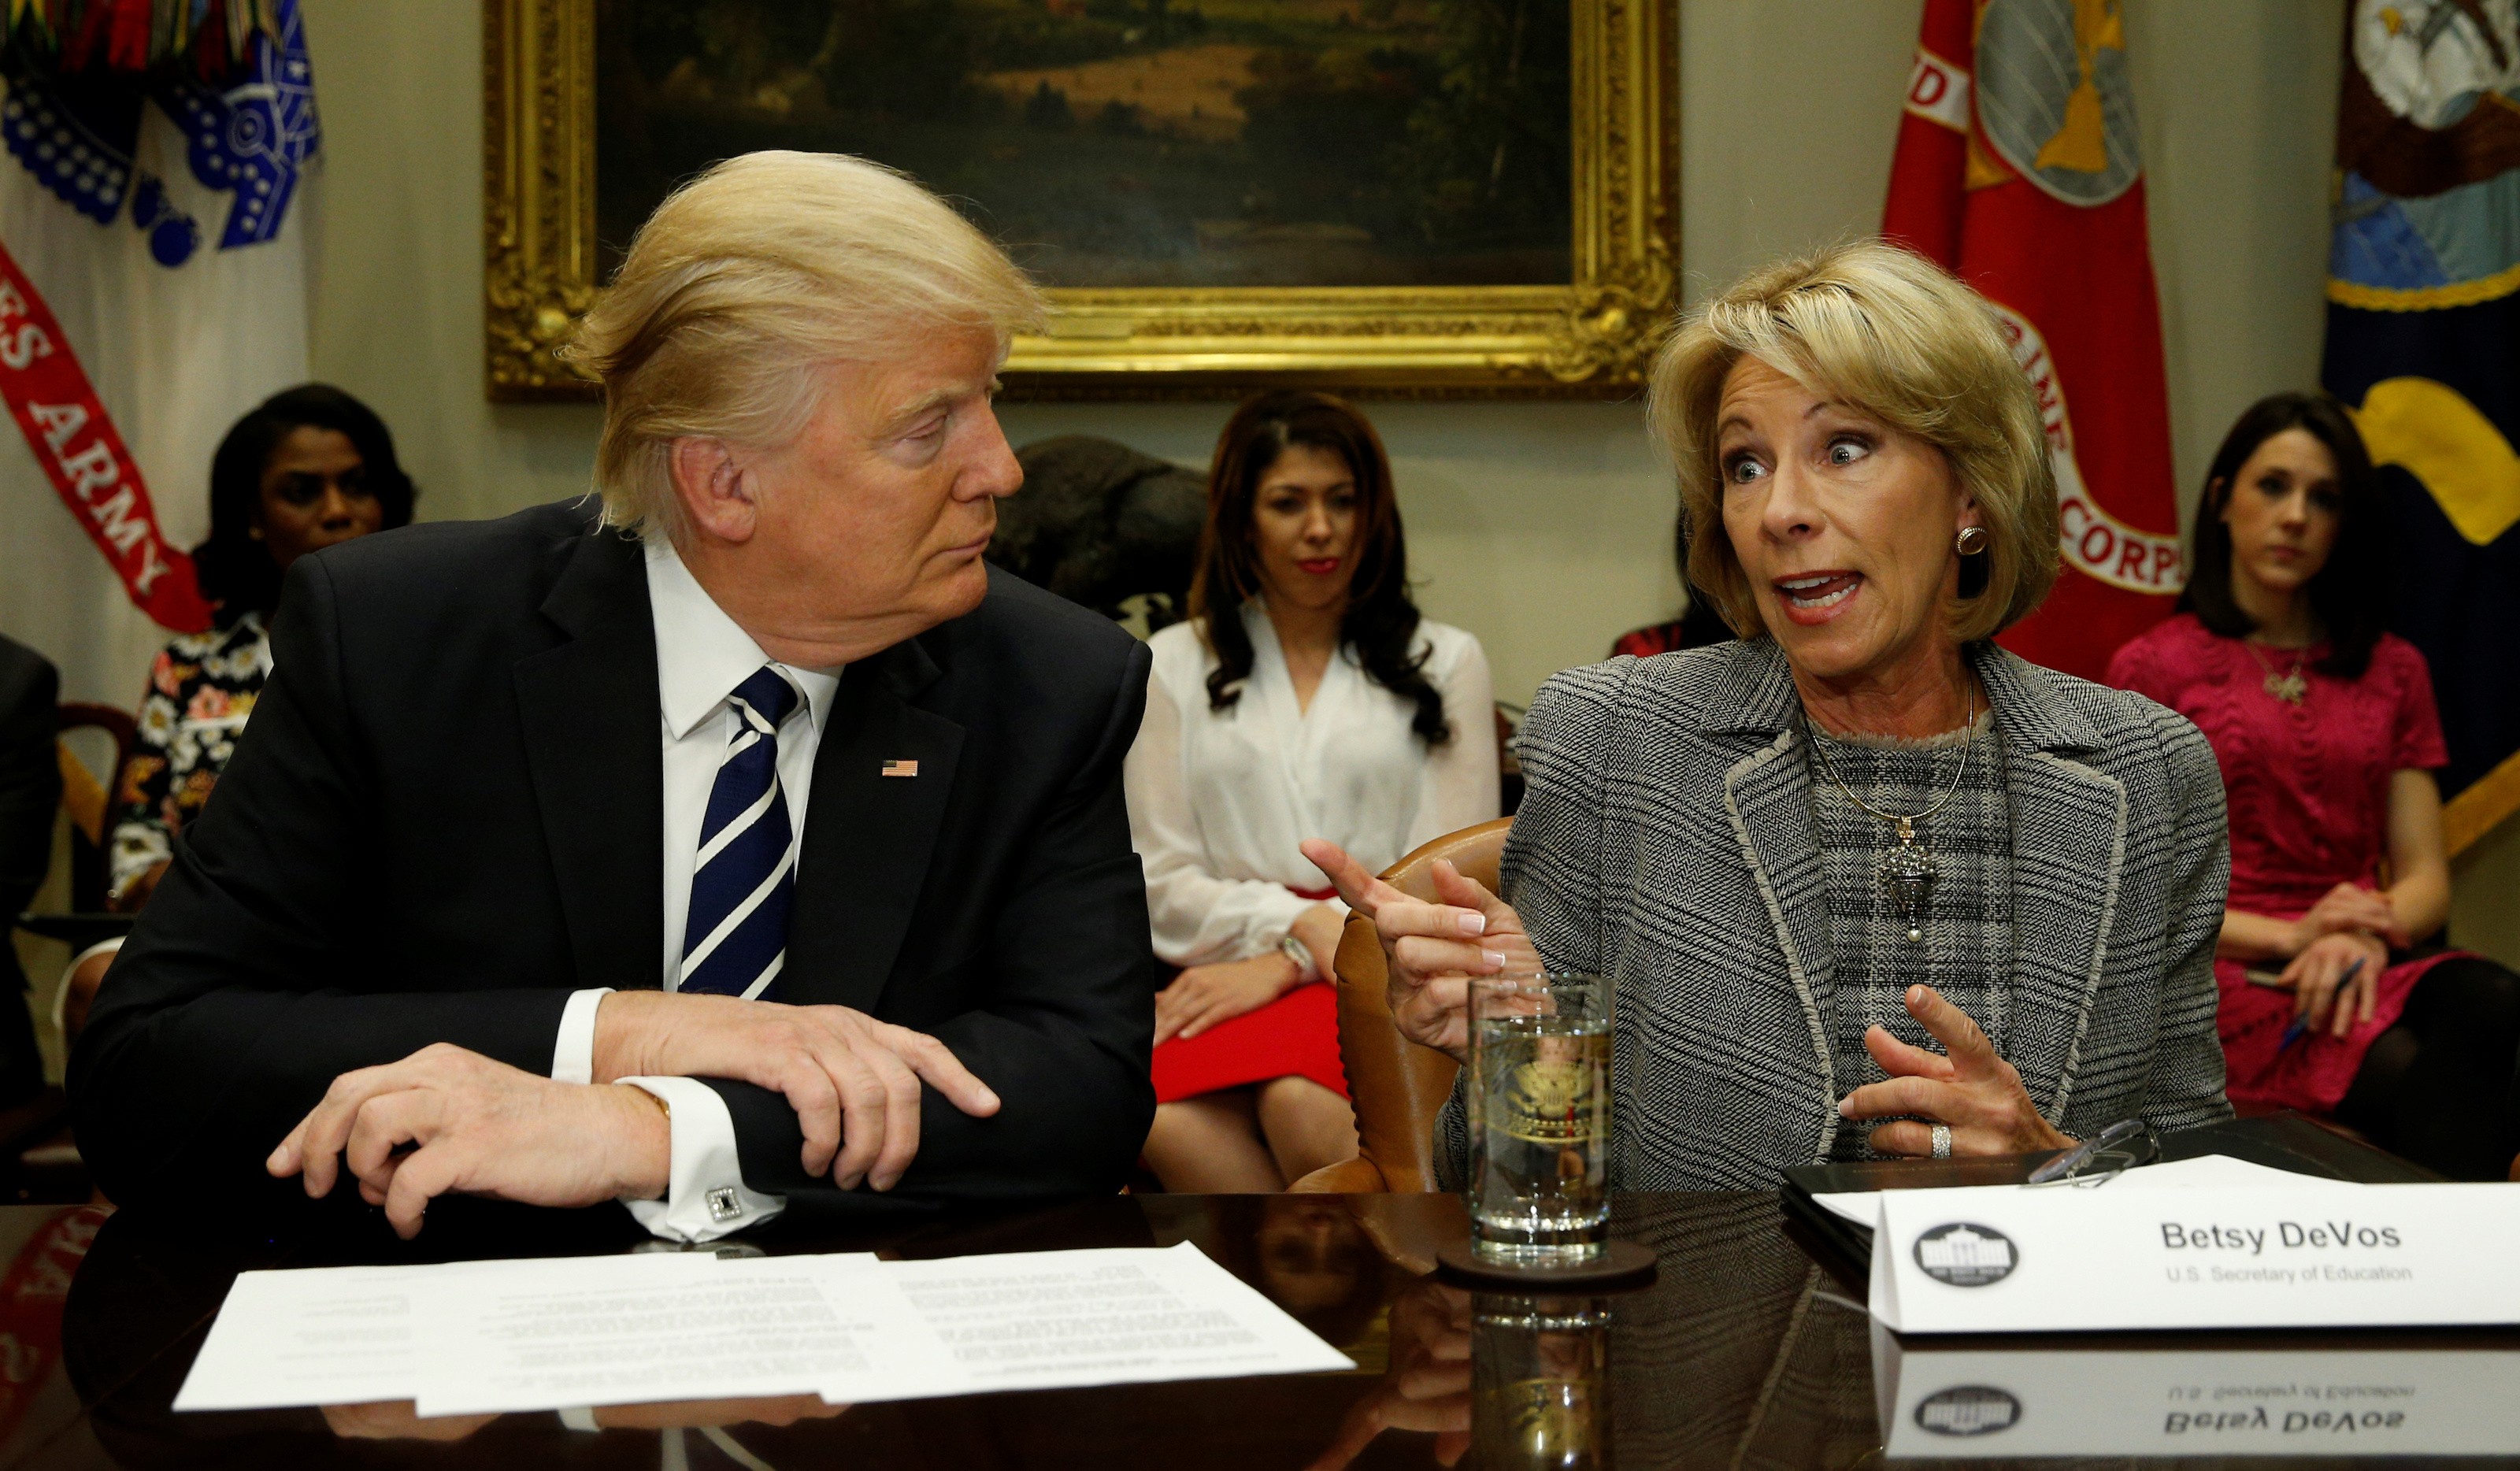 U.S. President Donald Trump listens to U.S. Secretary of Education Betsy DeVos speak at meeting with teachers and parents at the White House in Washington, U.S., February 14, 2017.  REUTERS/Kevin Lamarque - RTSYN1X